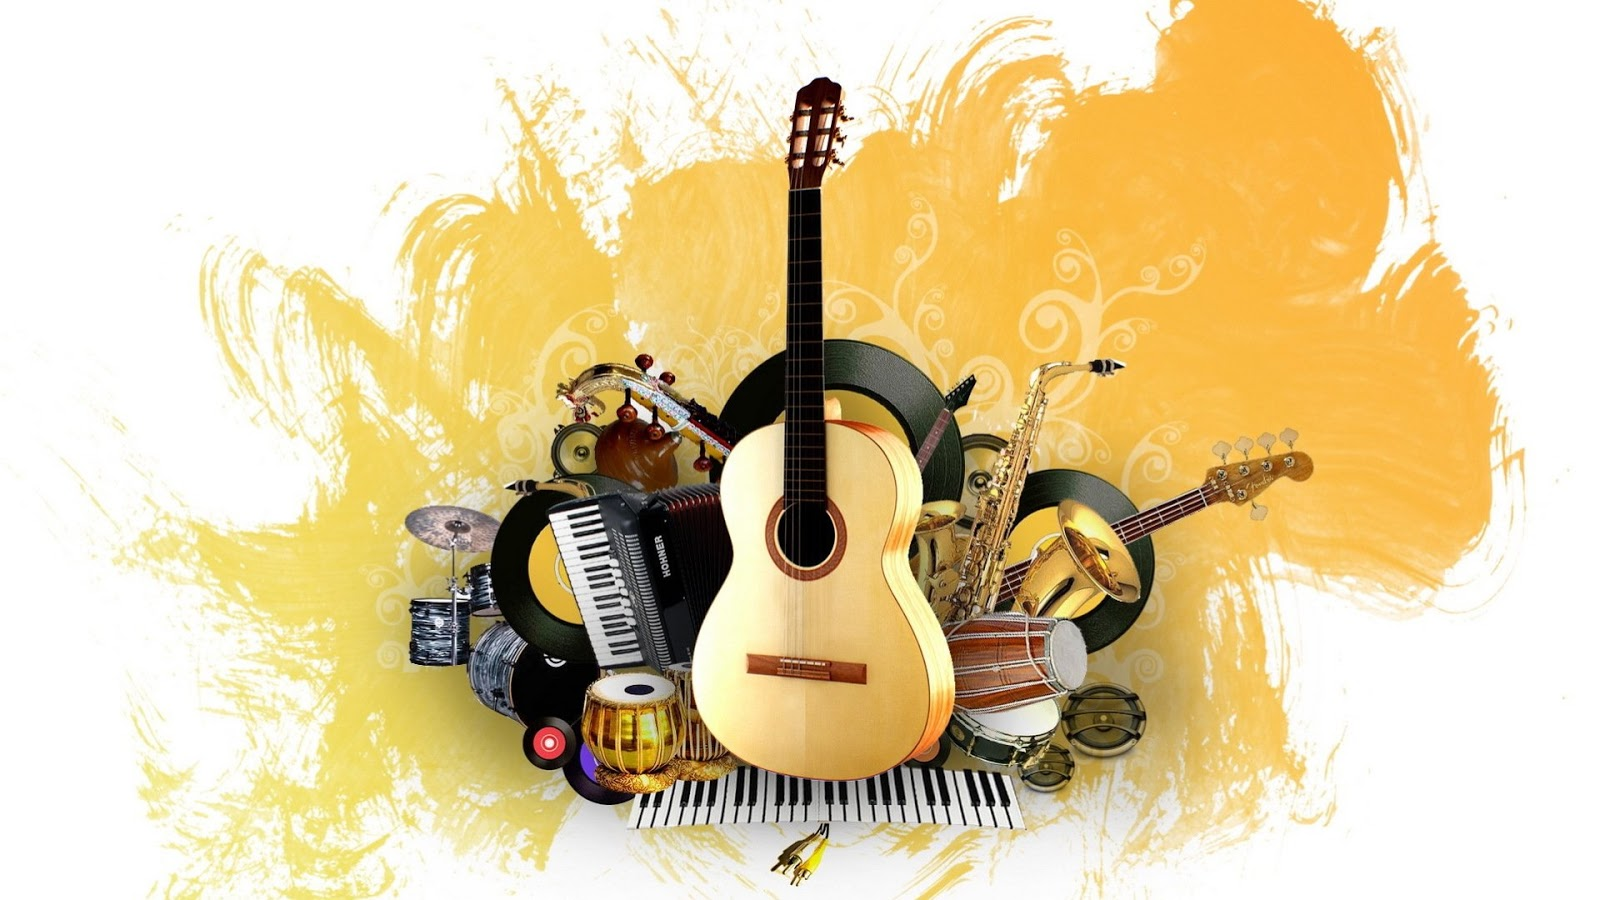 music, painting, instrument, creative